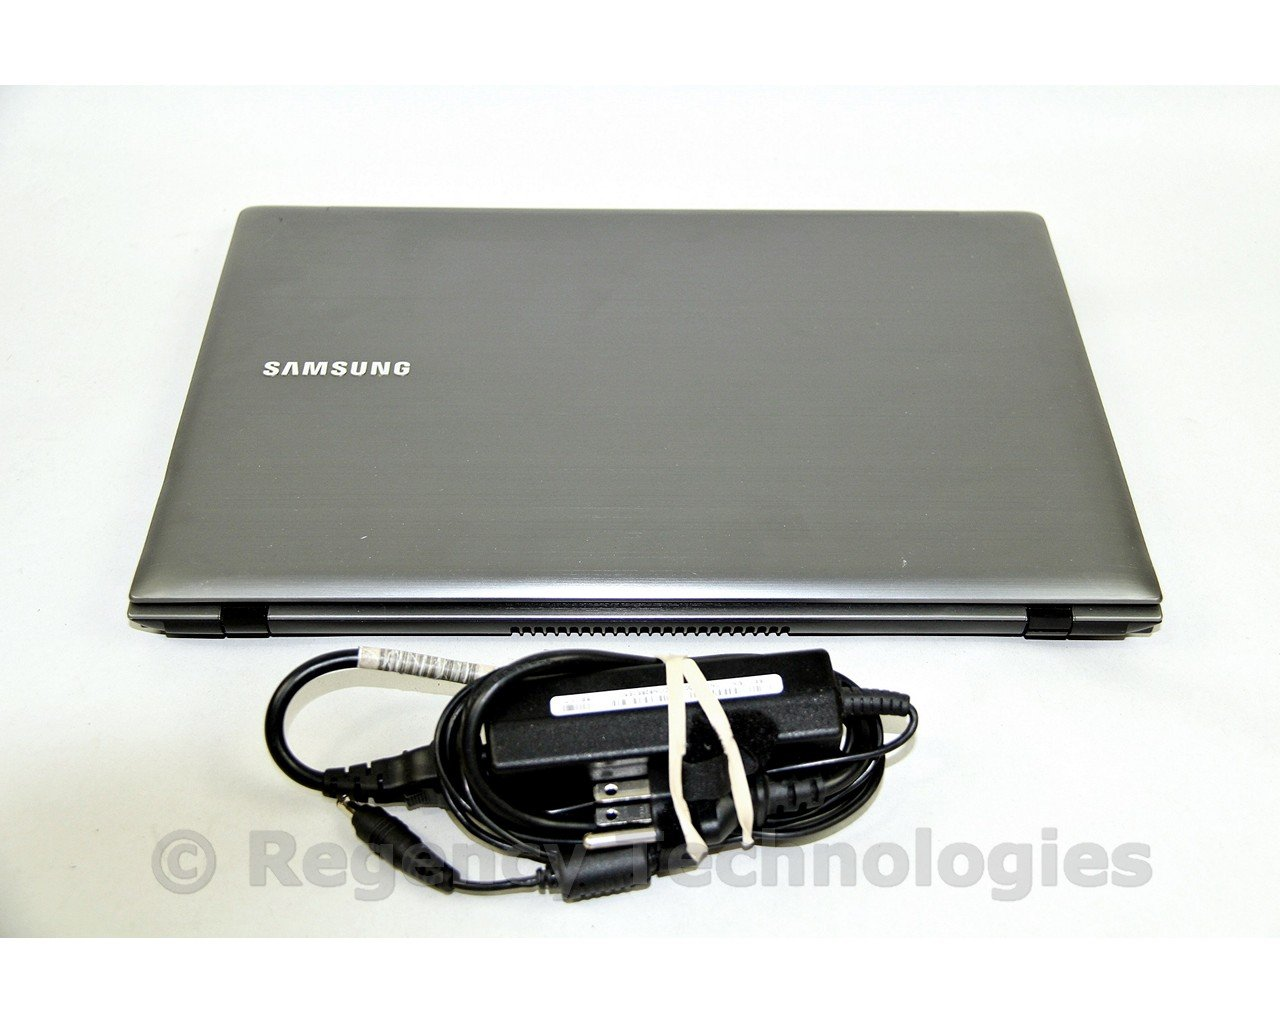 Samsung notebook drivers 300e - Amazon Com Samsung Laptop Intel Core I5 Processor 14 Display 4gb M Computers Accessories